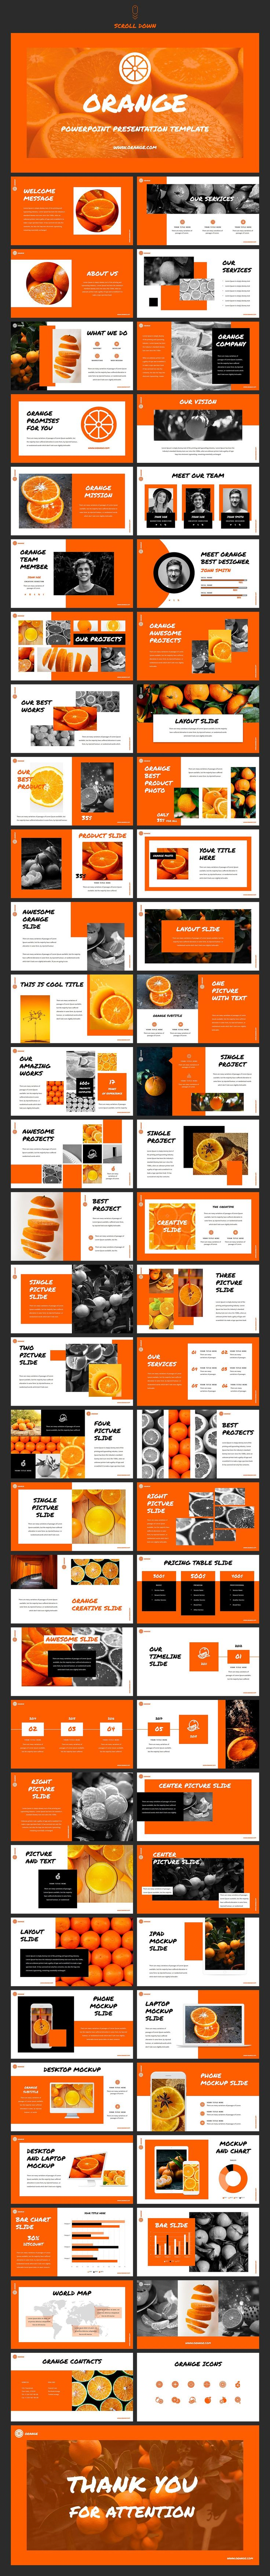 powerpoint poster presentation template